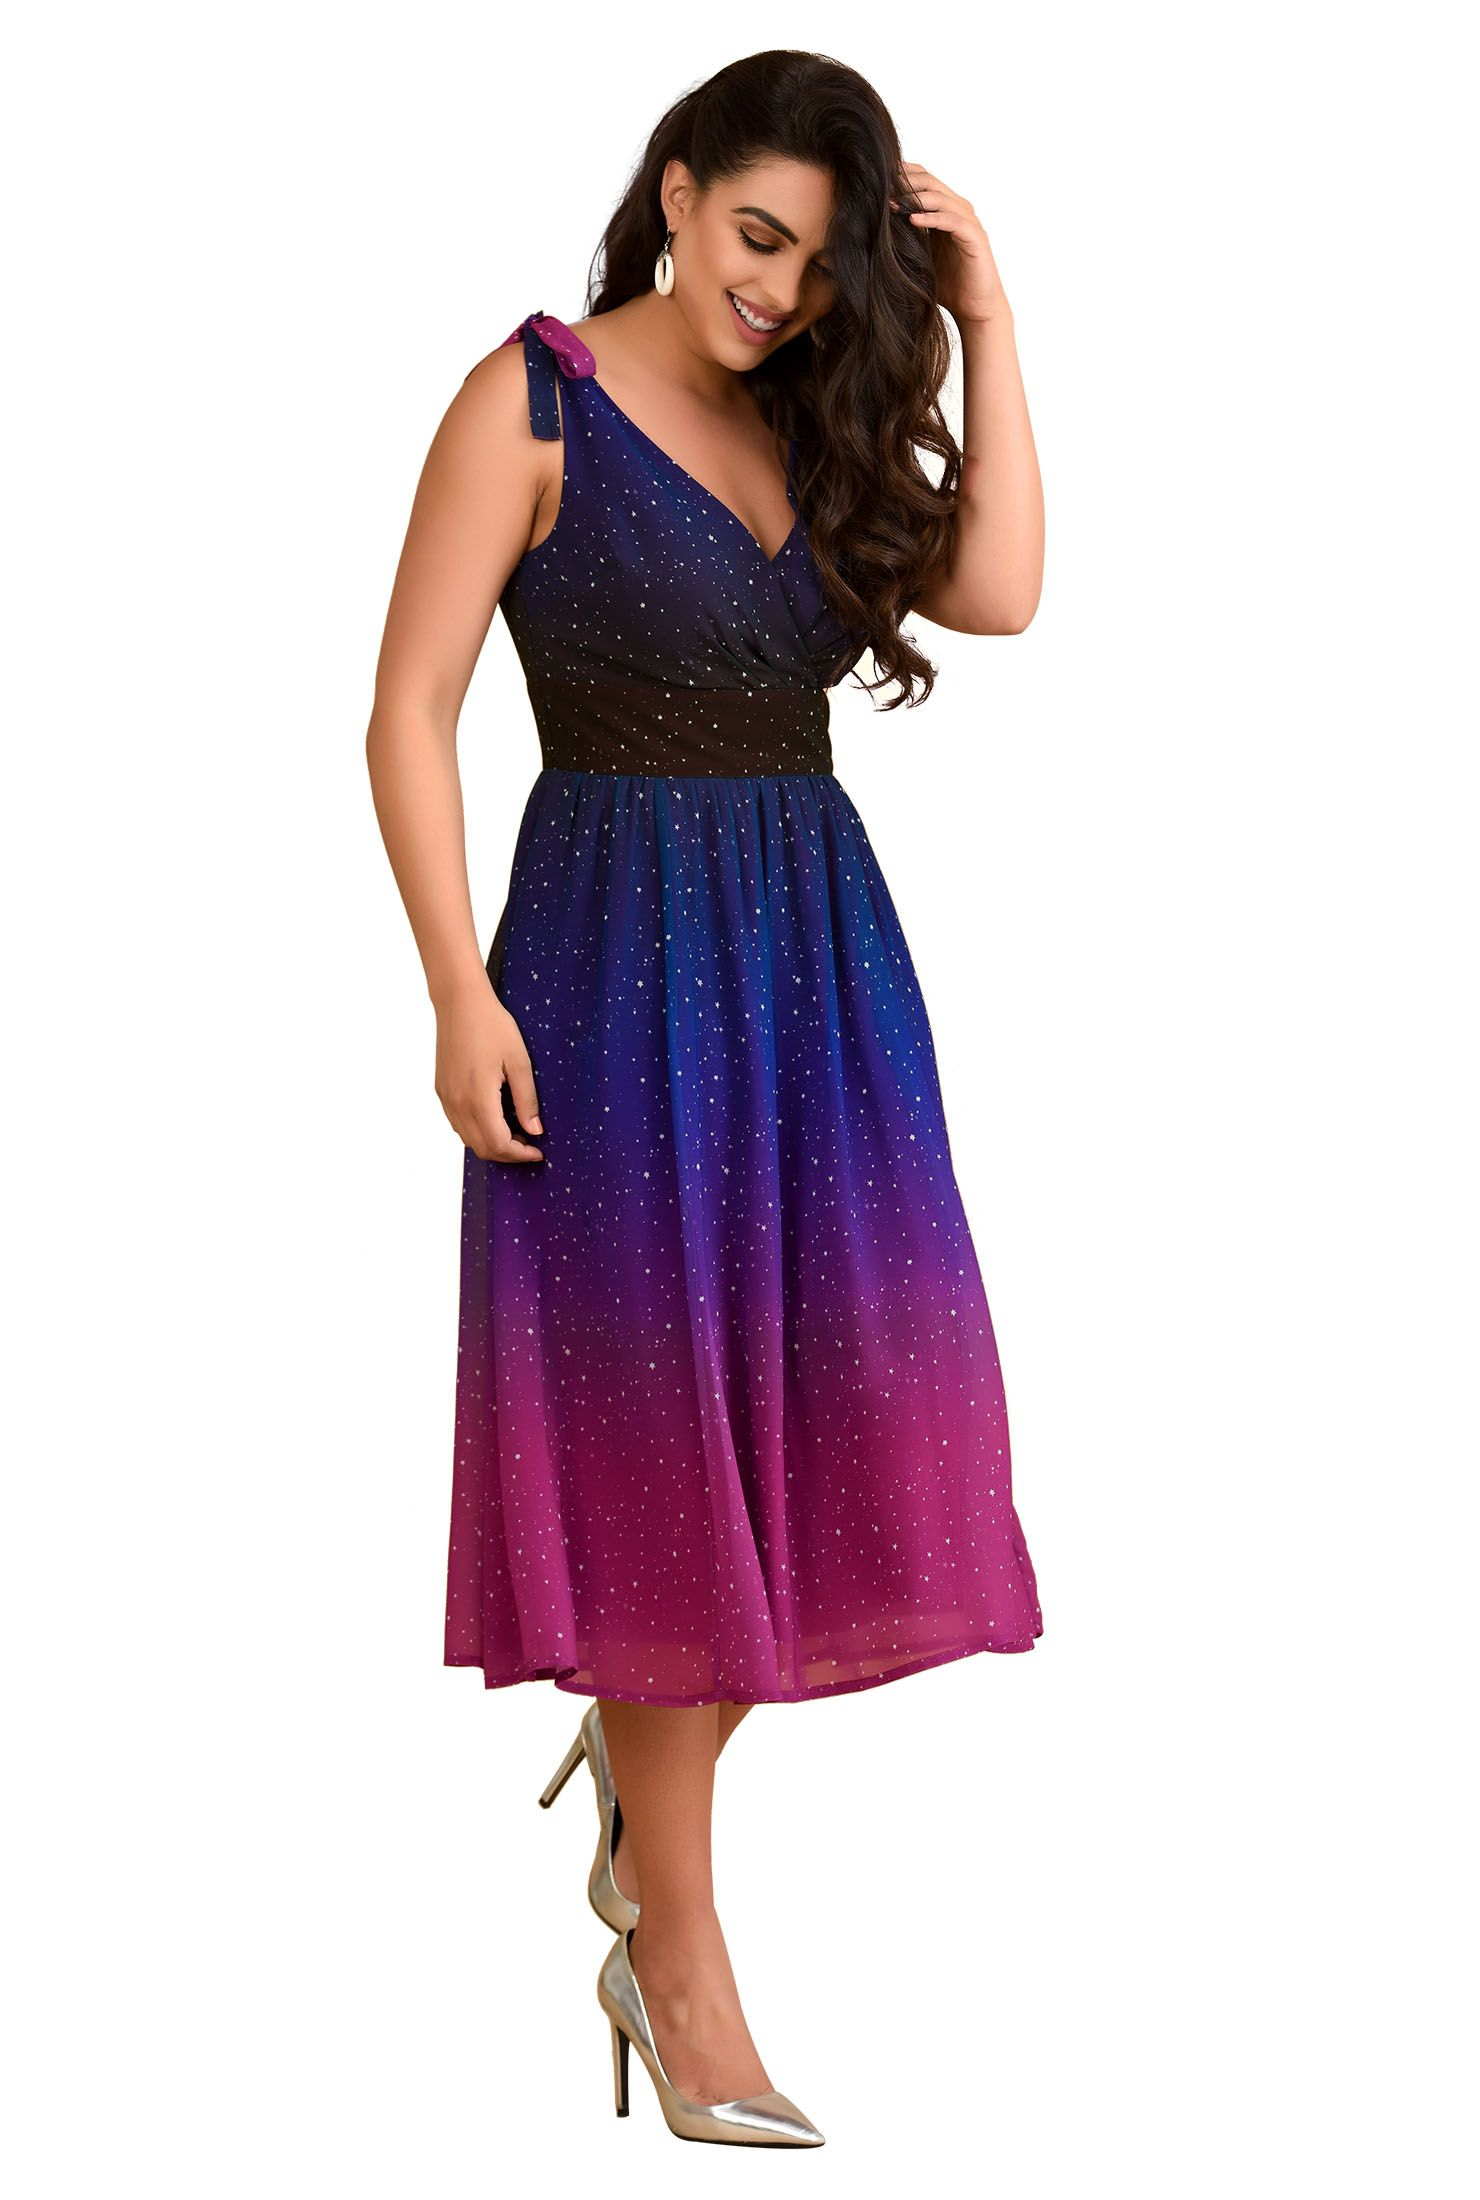 fc9768f376f2 Discover the latest dresses with eShakti. From party, prom and maxi dresses  to casual and occasion dresses and more. Shop from hundreds of dresses with  ...